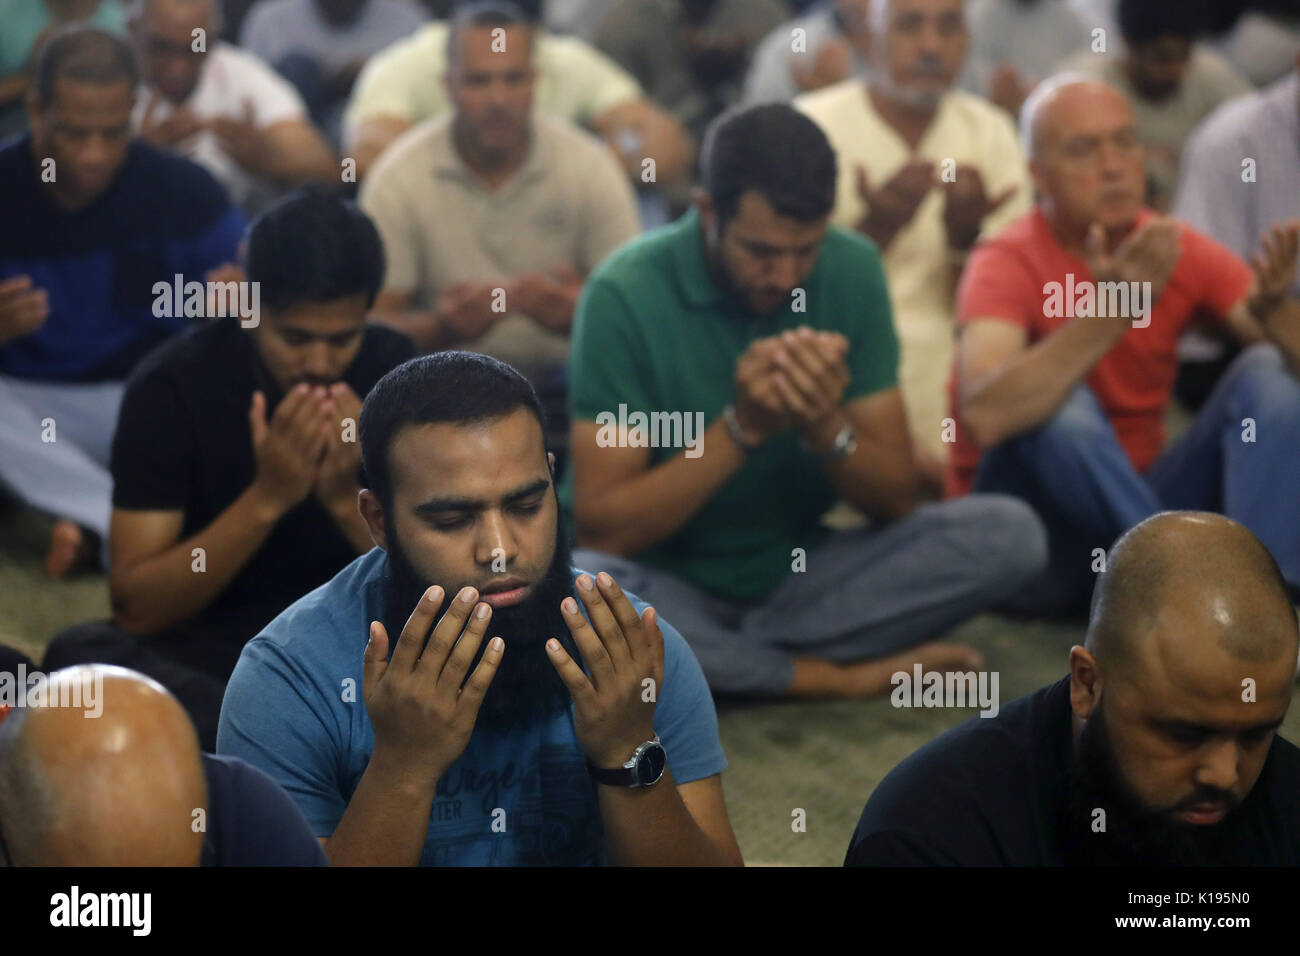 Madrid, Spain. 25th August, 2017. Muslims pray at the Mosque of the Islamic Centre of Madrid, the main mosque of the city and the biggest in Spain, during Friday prayers in Madrid, Spain, 25 August 2017. The Imam of Madrid's Mosque declared 25 August 2017, during Friday prayers, that the muslim community is together with the families of victims of the Catalonian terrorists attacks denying that islamic temples are 'places to train terrorists'. EFE/Juan Carlos Hidalgo/Alamy Live News - Stock Image